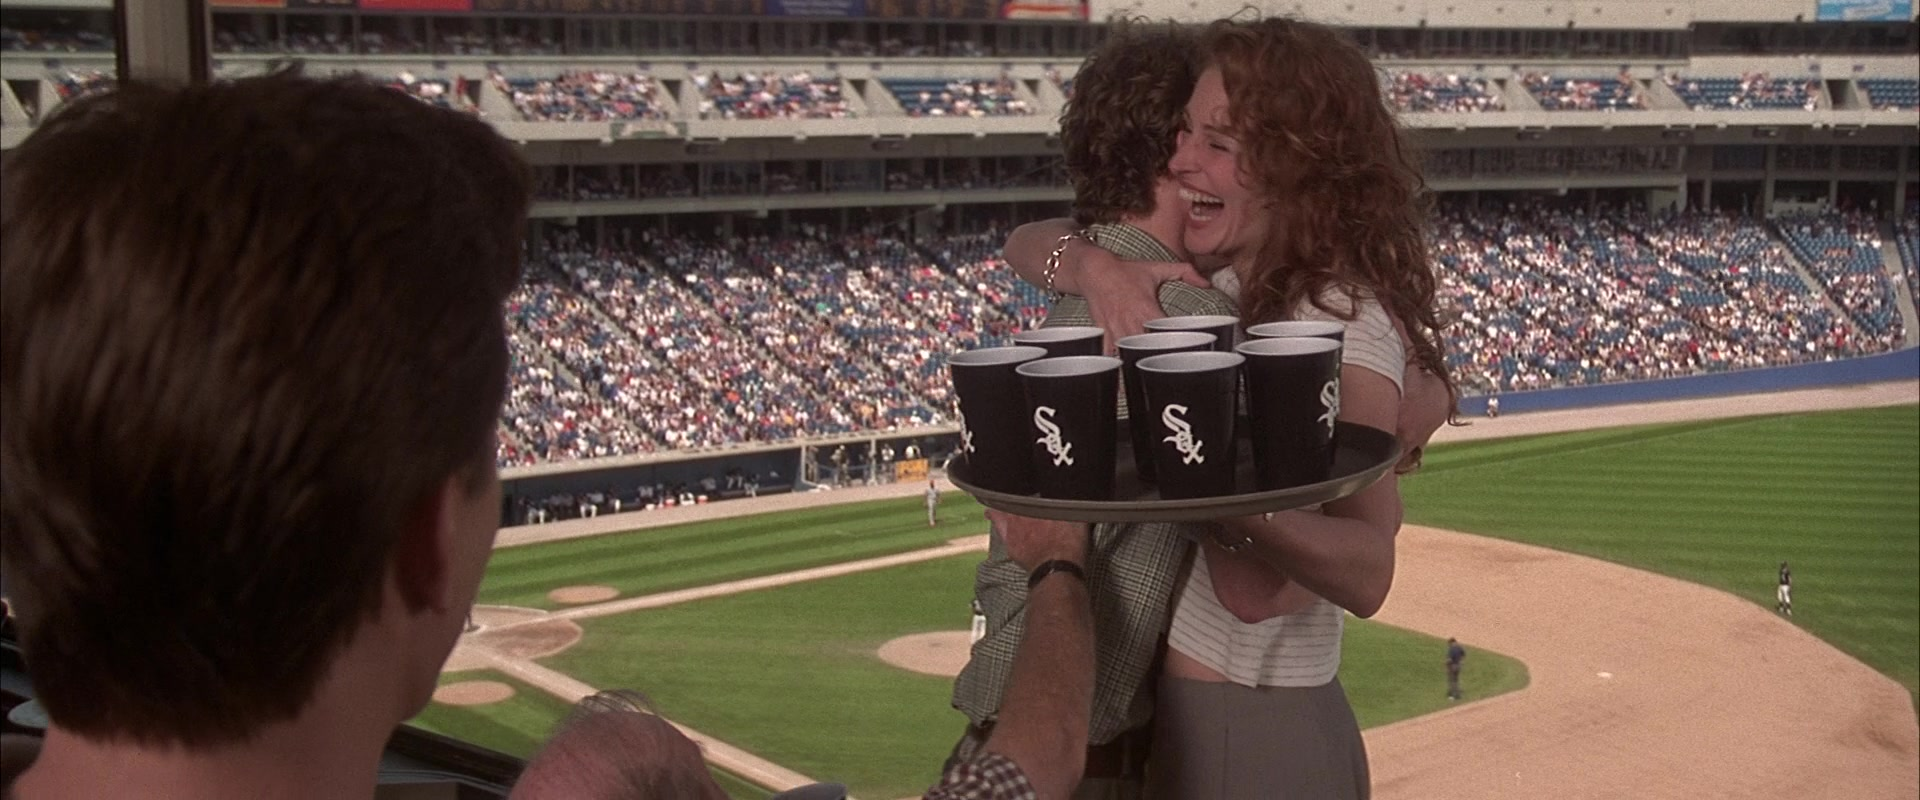 Chicago White Sox Baseball Team Cups Held By Julia Roberts In My Best Friend S Wedding 1997